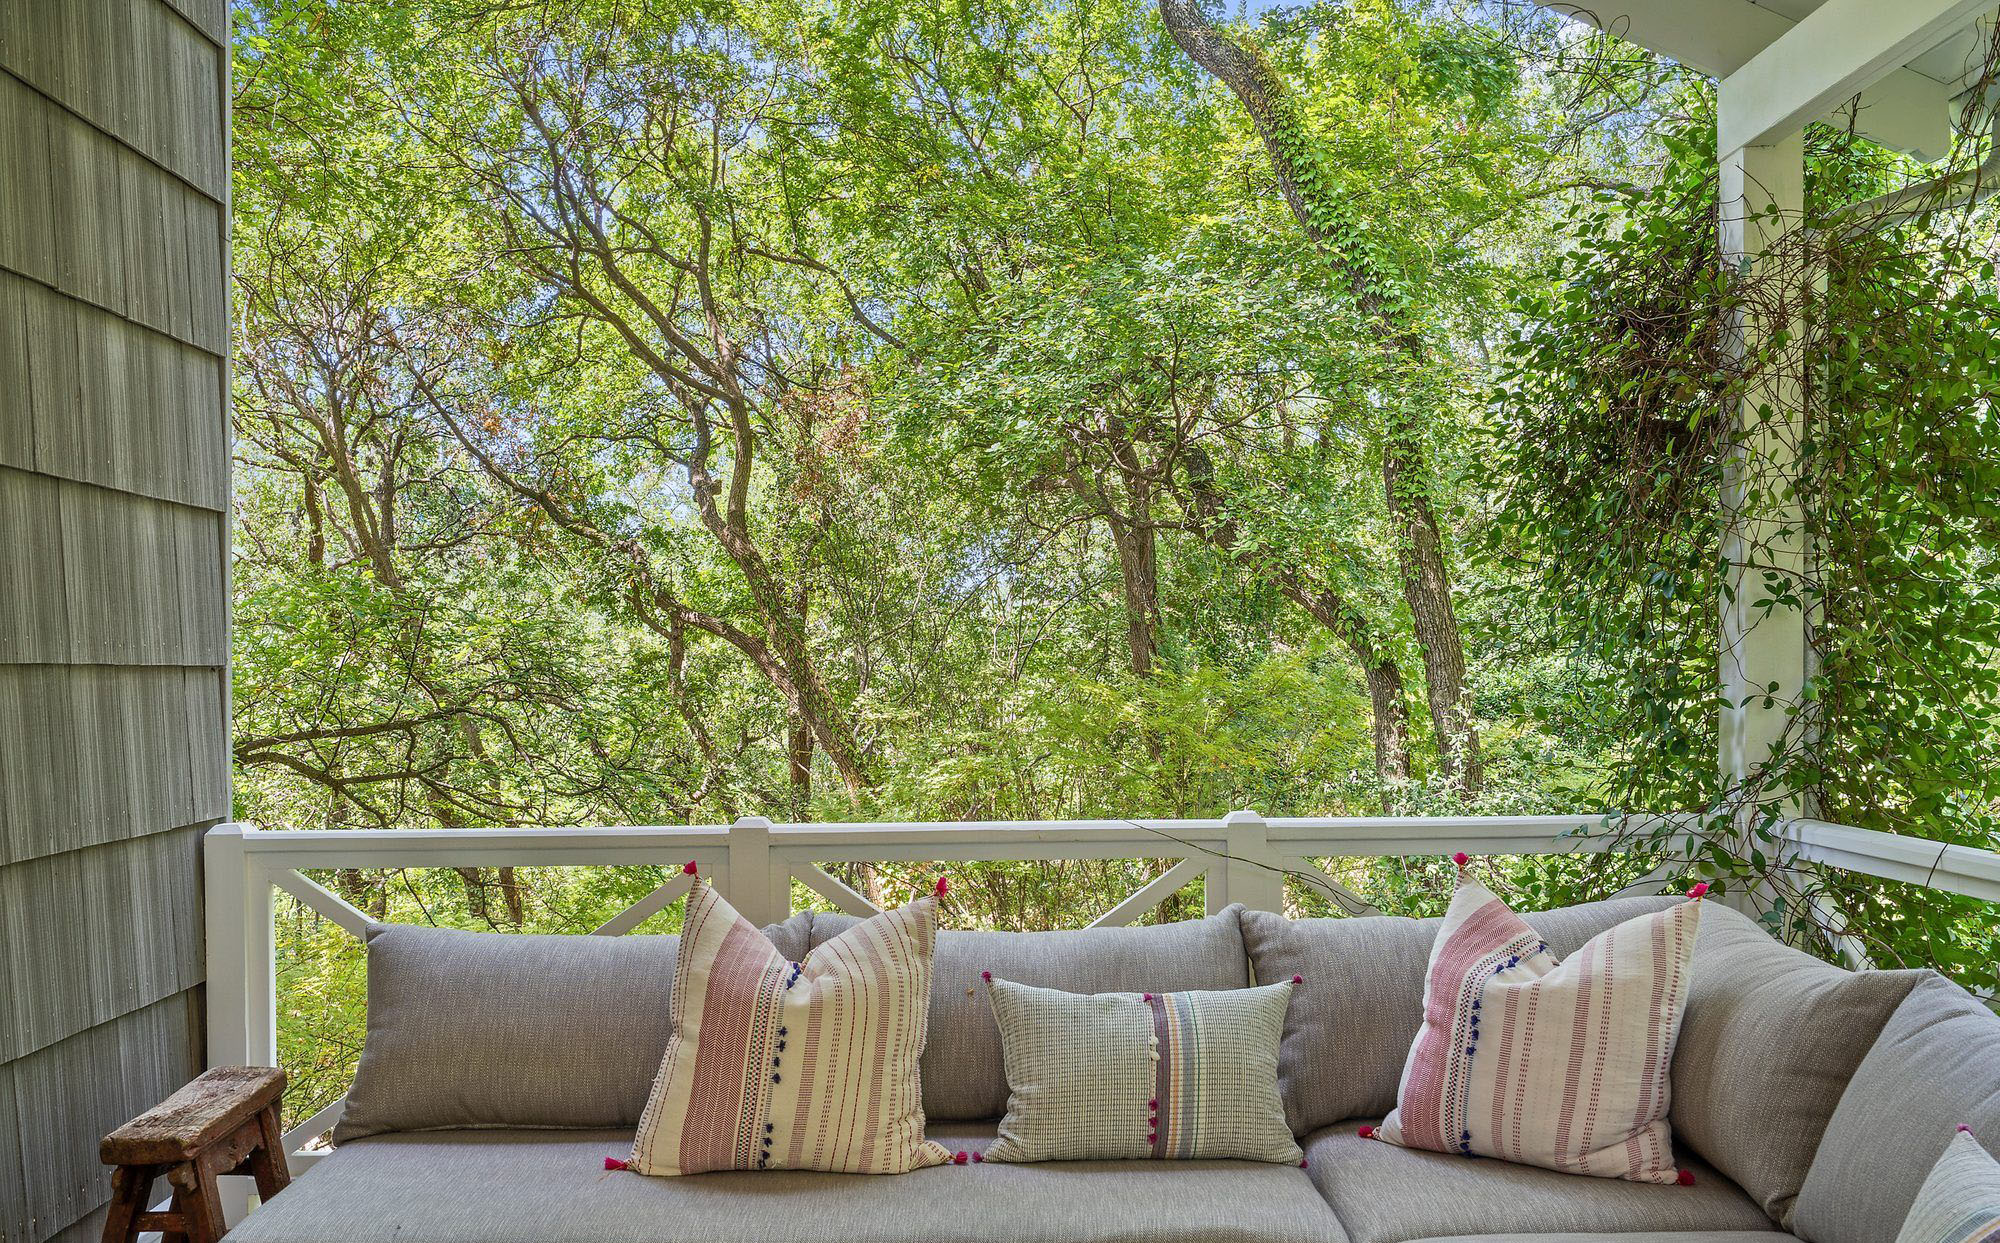 Colorful pattern indoor pillows used on the back deck outdoor sofa.